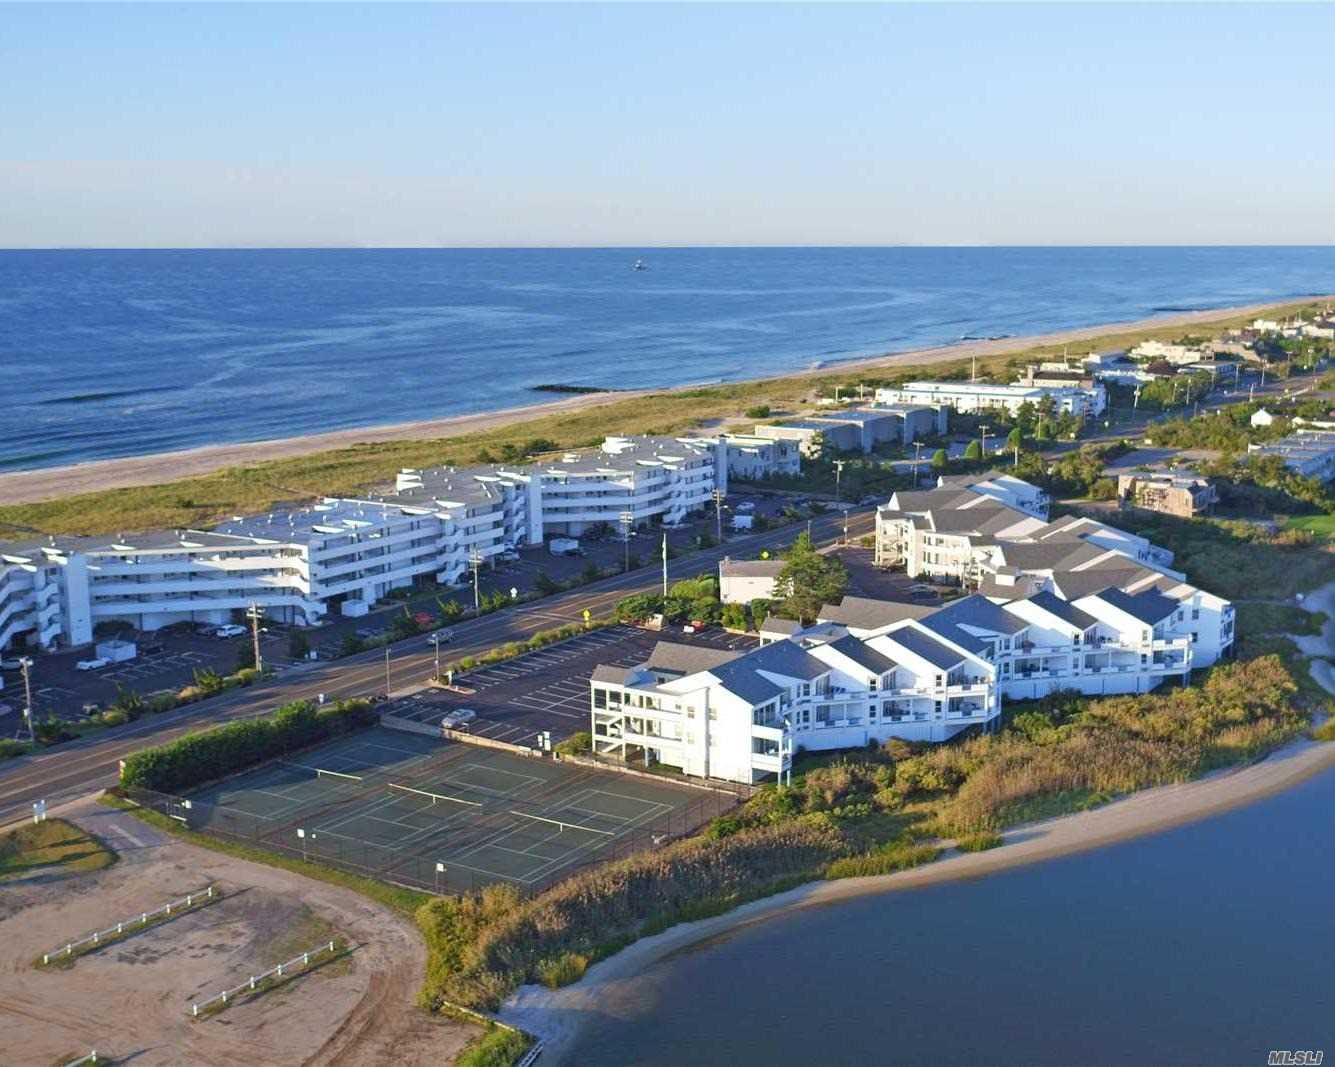 Enjoy The Breathtaking Bay Views From The Nicely Sized Balcony Of This Two Bedroom, Two Bathroom End Unit Located In Westhampton Beach's Yardarm Offering Your Choice Of Seasonal Or Year-Round Living. Amenities Include Two Heated Pools (Bay Side And Ocean Side), Three Har Tru Tennis Courts And Ocean Beach Access. Unit Has It's Own Washer And Dryer And An Elevator Is Located In The Building.